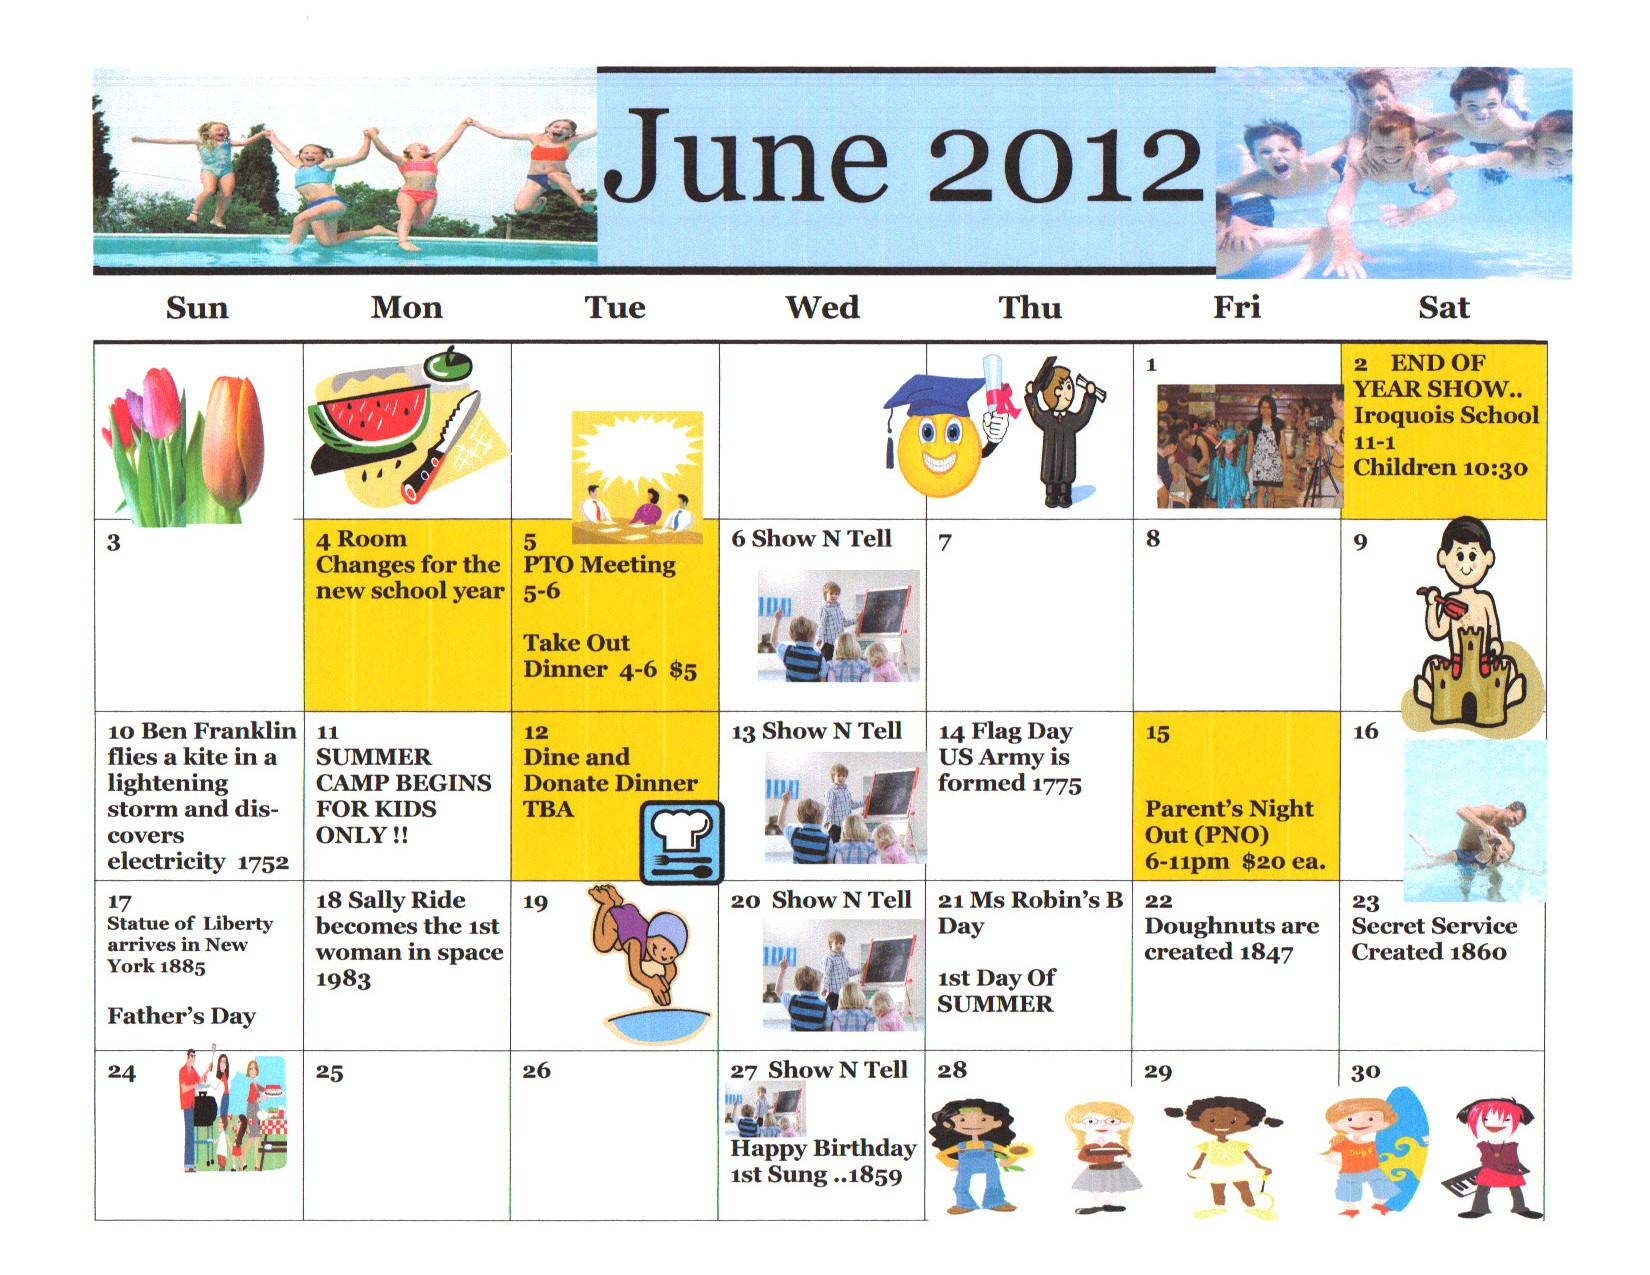 June Calendar Events : List of synonyms and antonyms the word june events